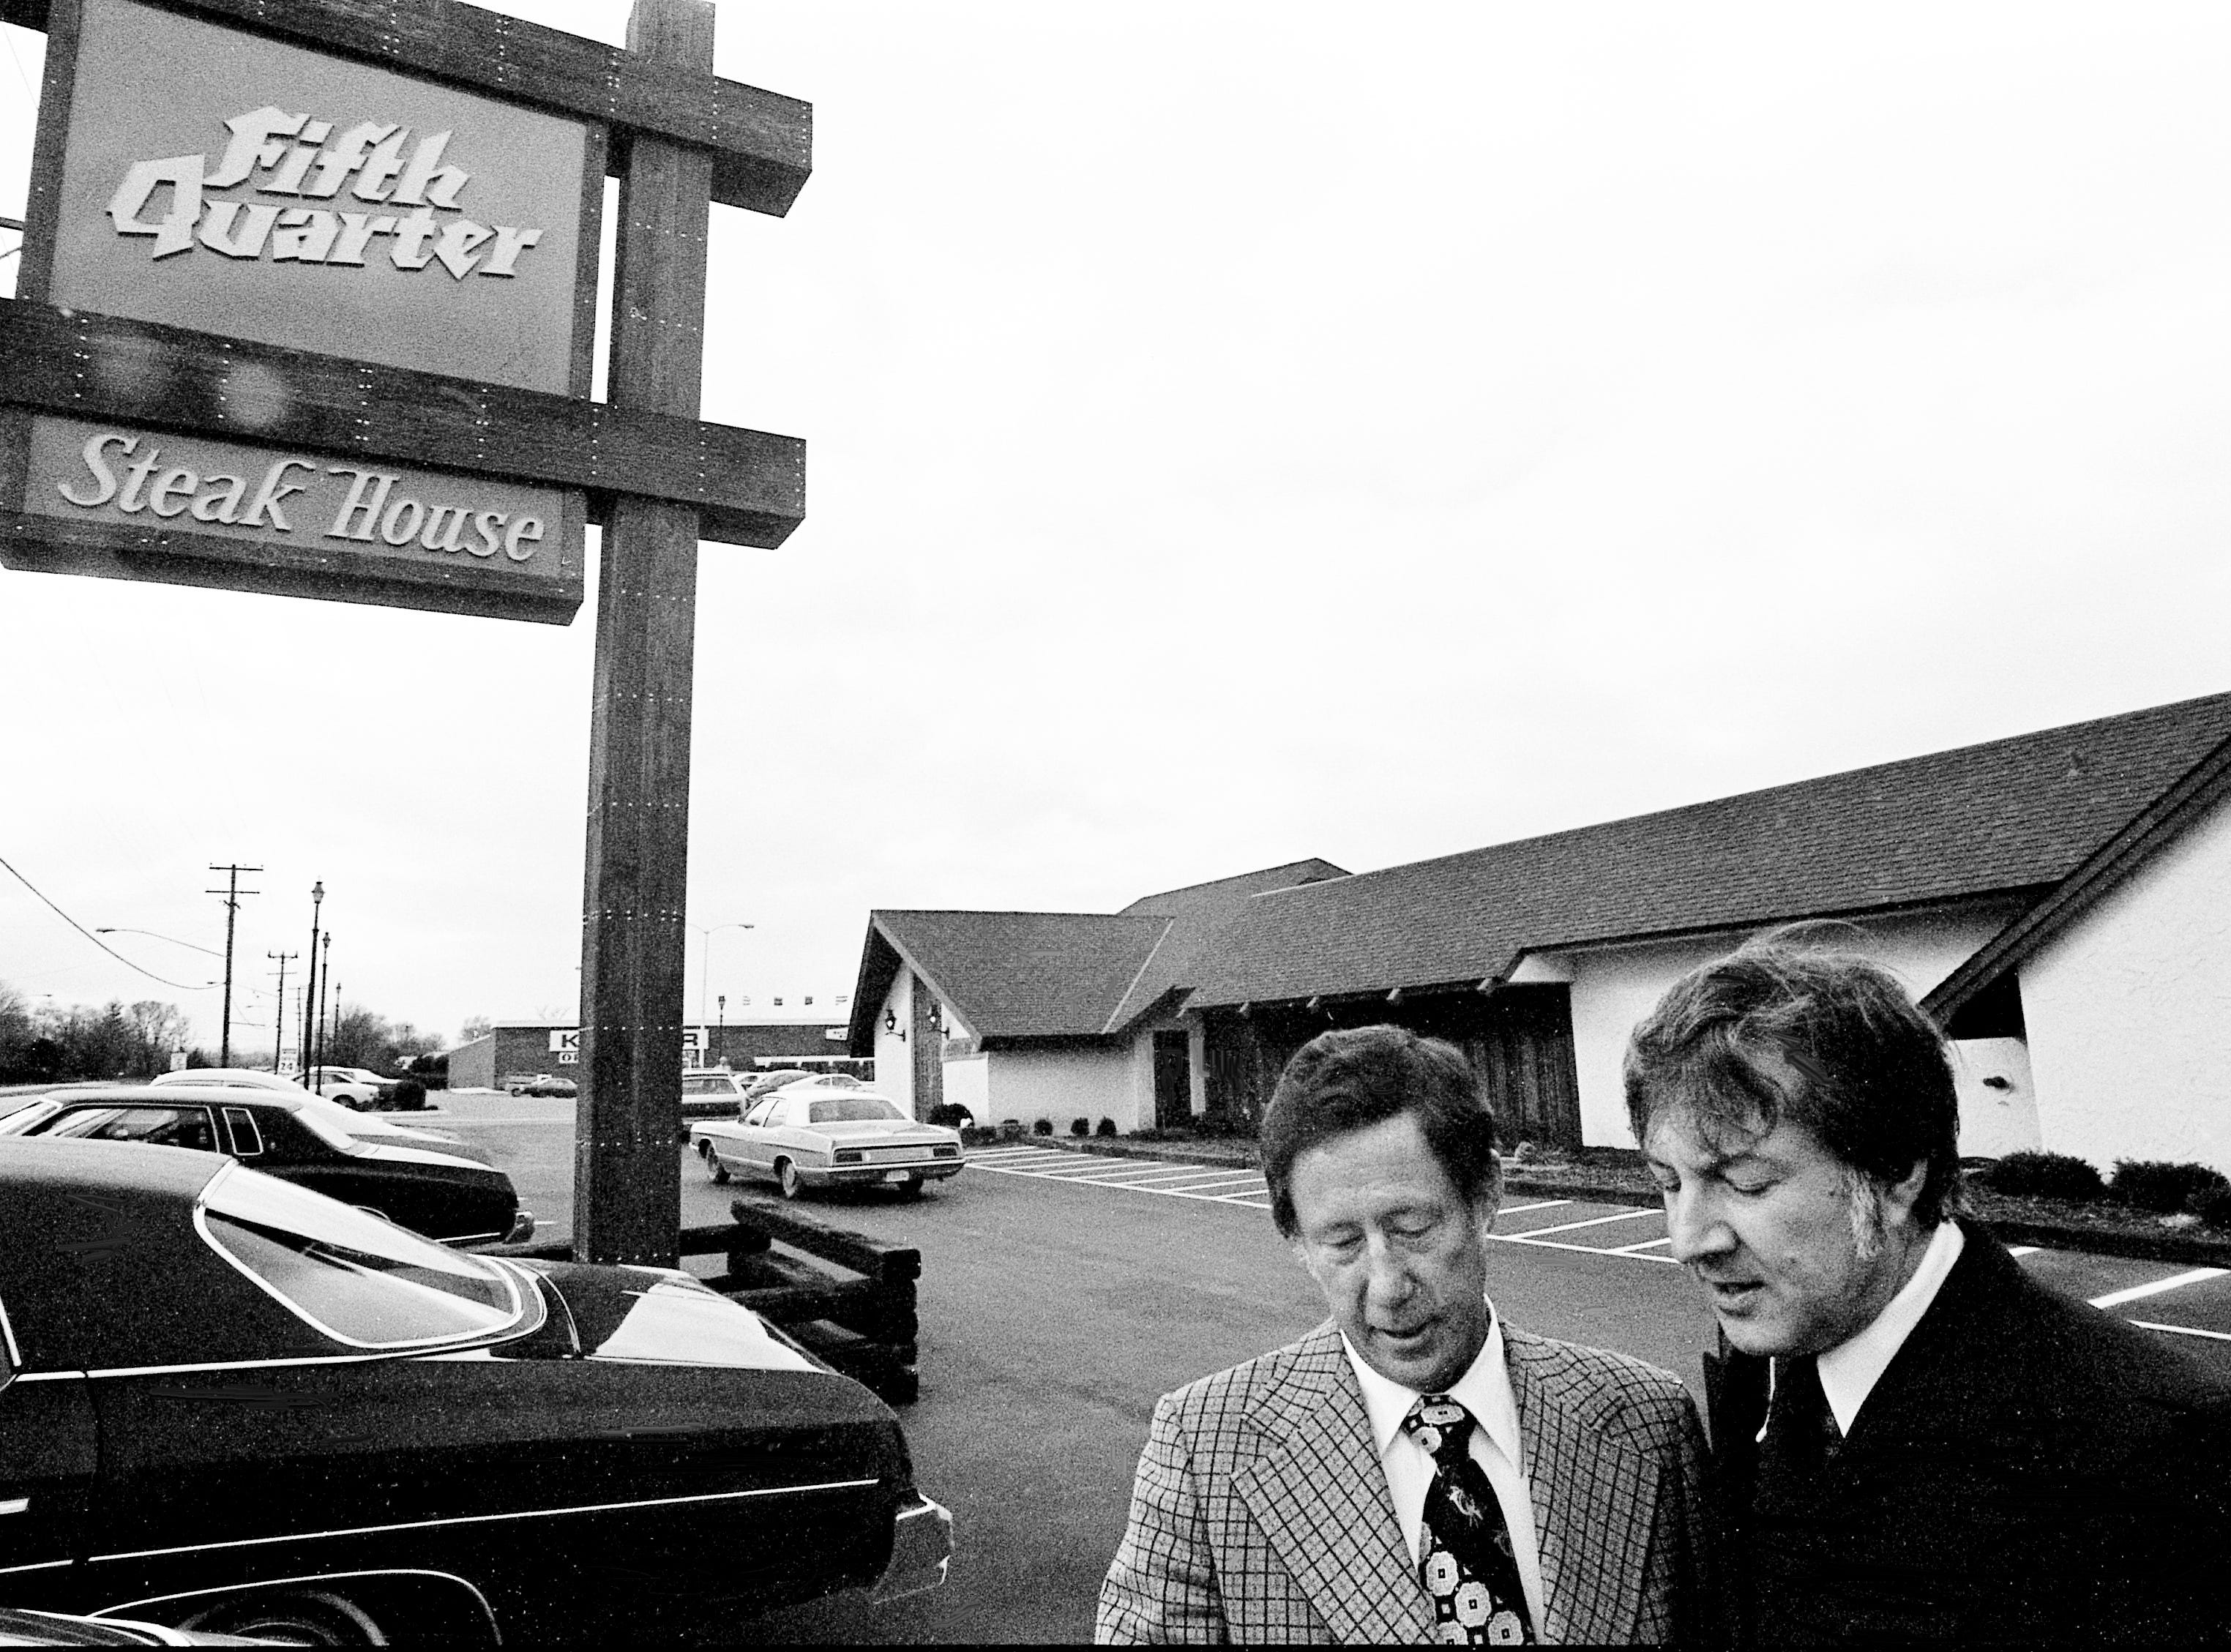 Sonny Durante, right, division director of Shoney's Big Boy Enterprises, talks Dec. 27, 1973 with Shoney's president Ray Danner in front of the new Fifth Quarter Steak House and Cocktail Lounge at the intersection of Thompson Lane and Murfreesboro Road.